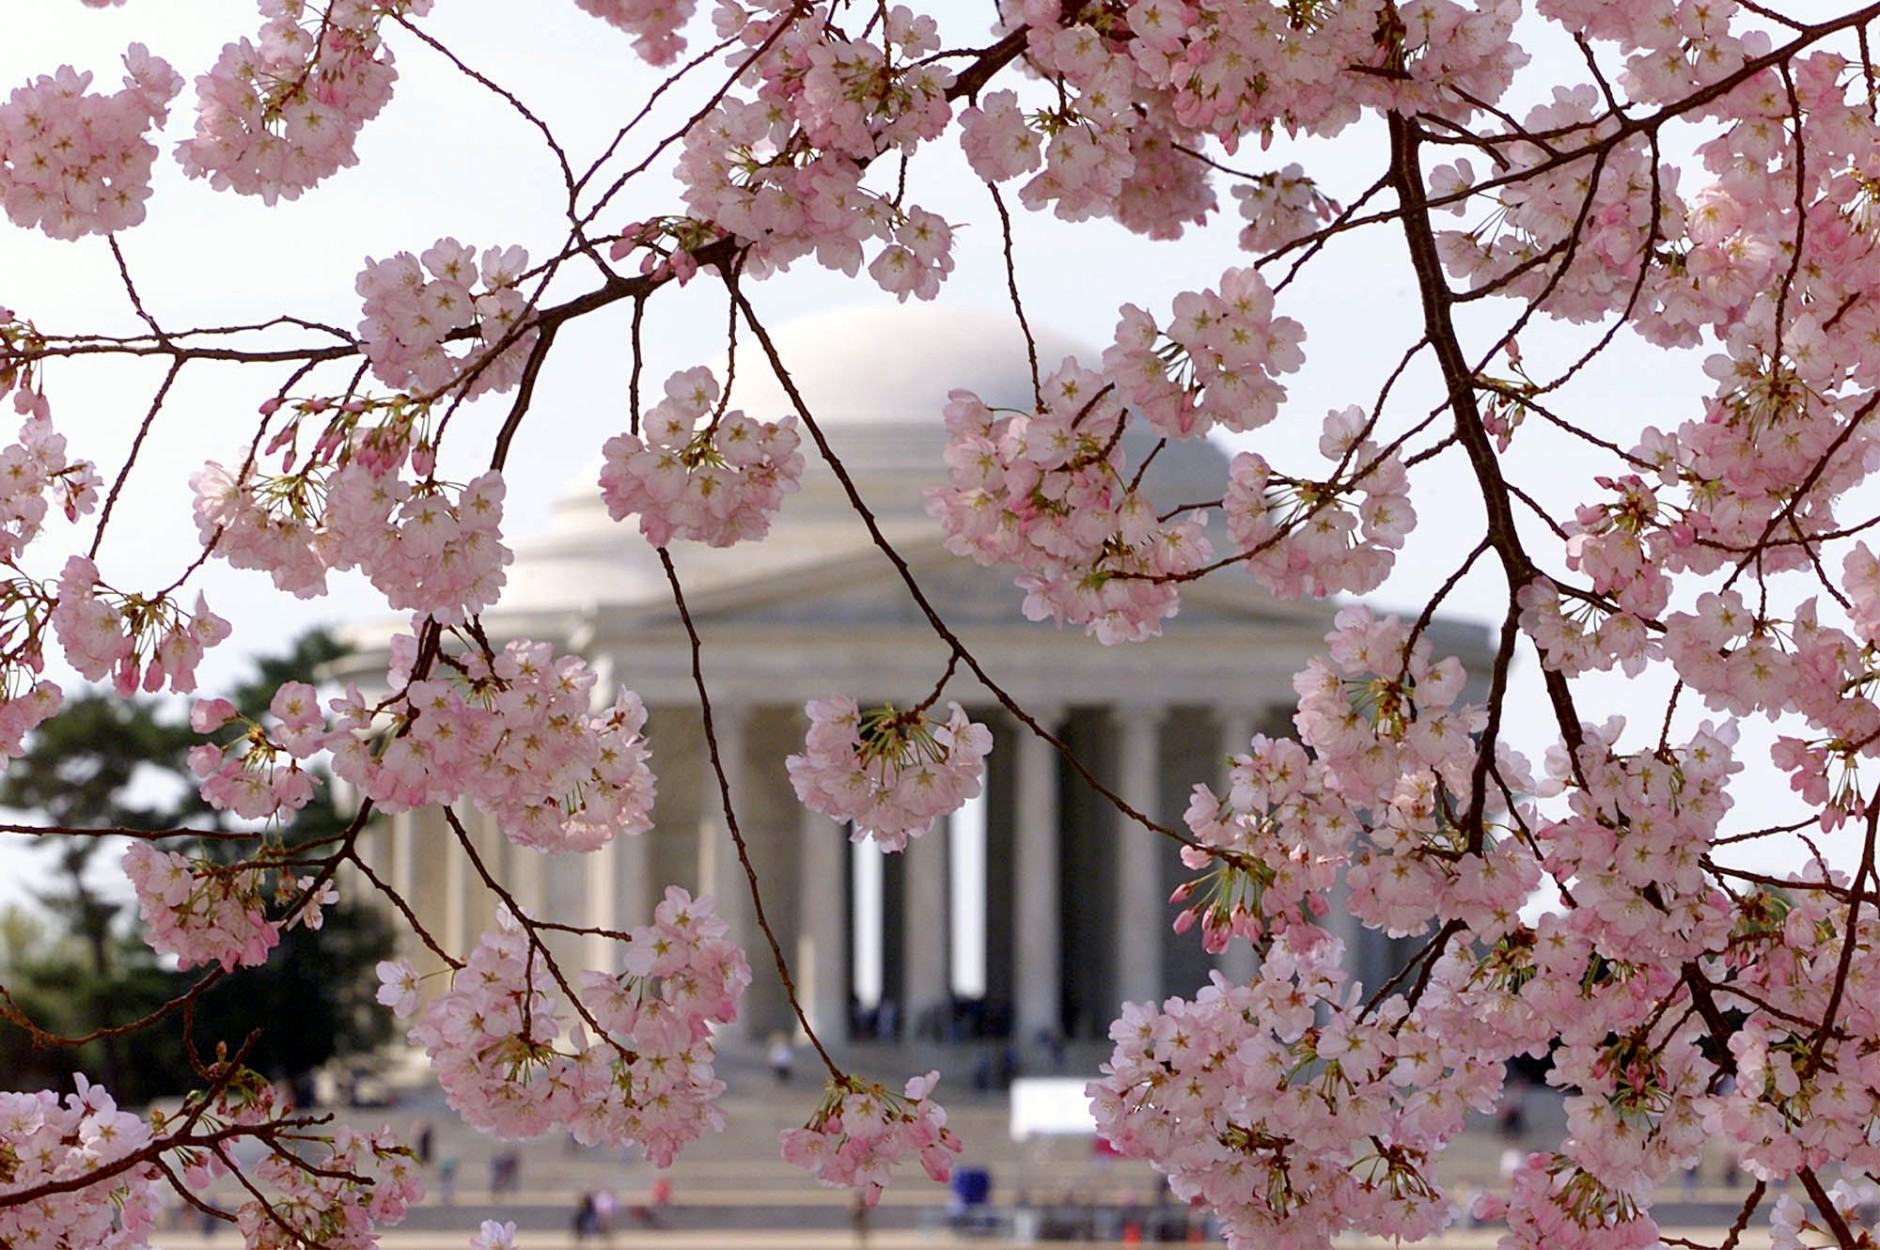 Park service: D.C. cherry blossoms at peak bloom